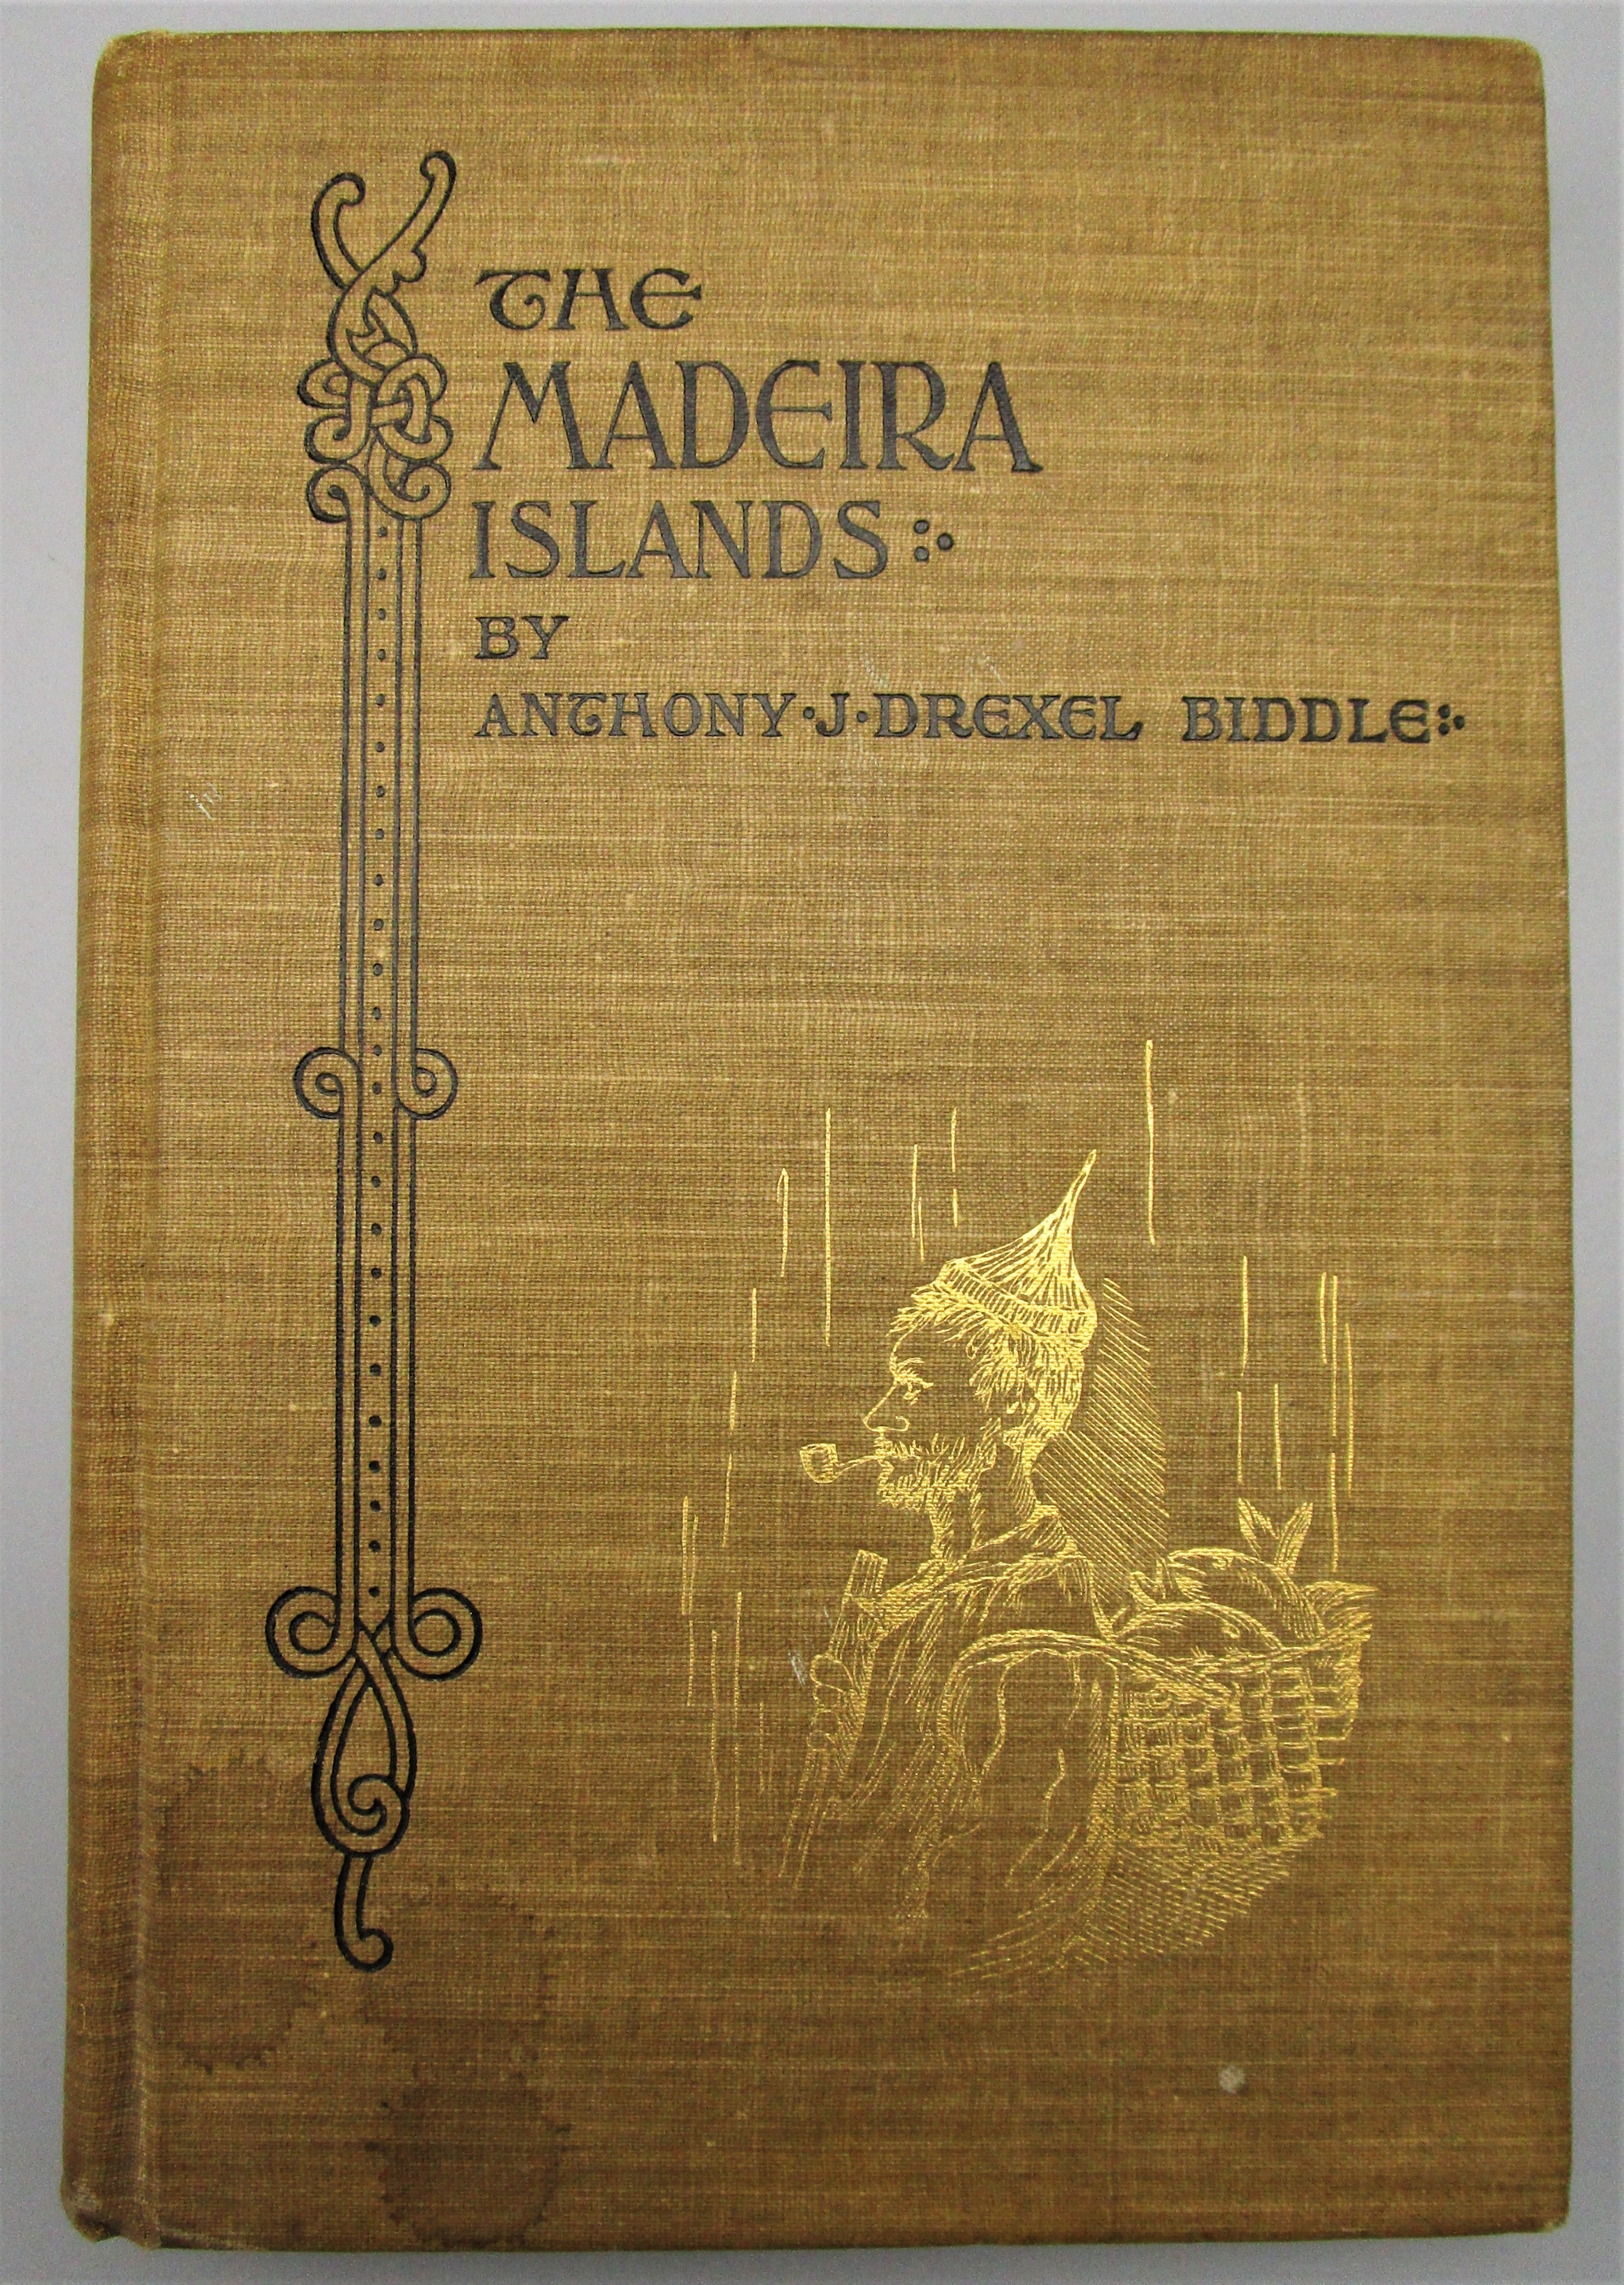 THE MADEIRA ISLANDS, by Anthony J. Drexel Biddle 1896 First Edition